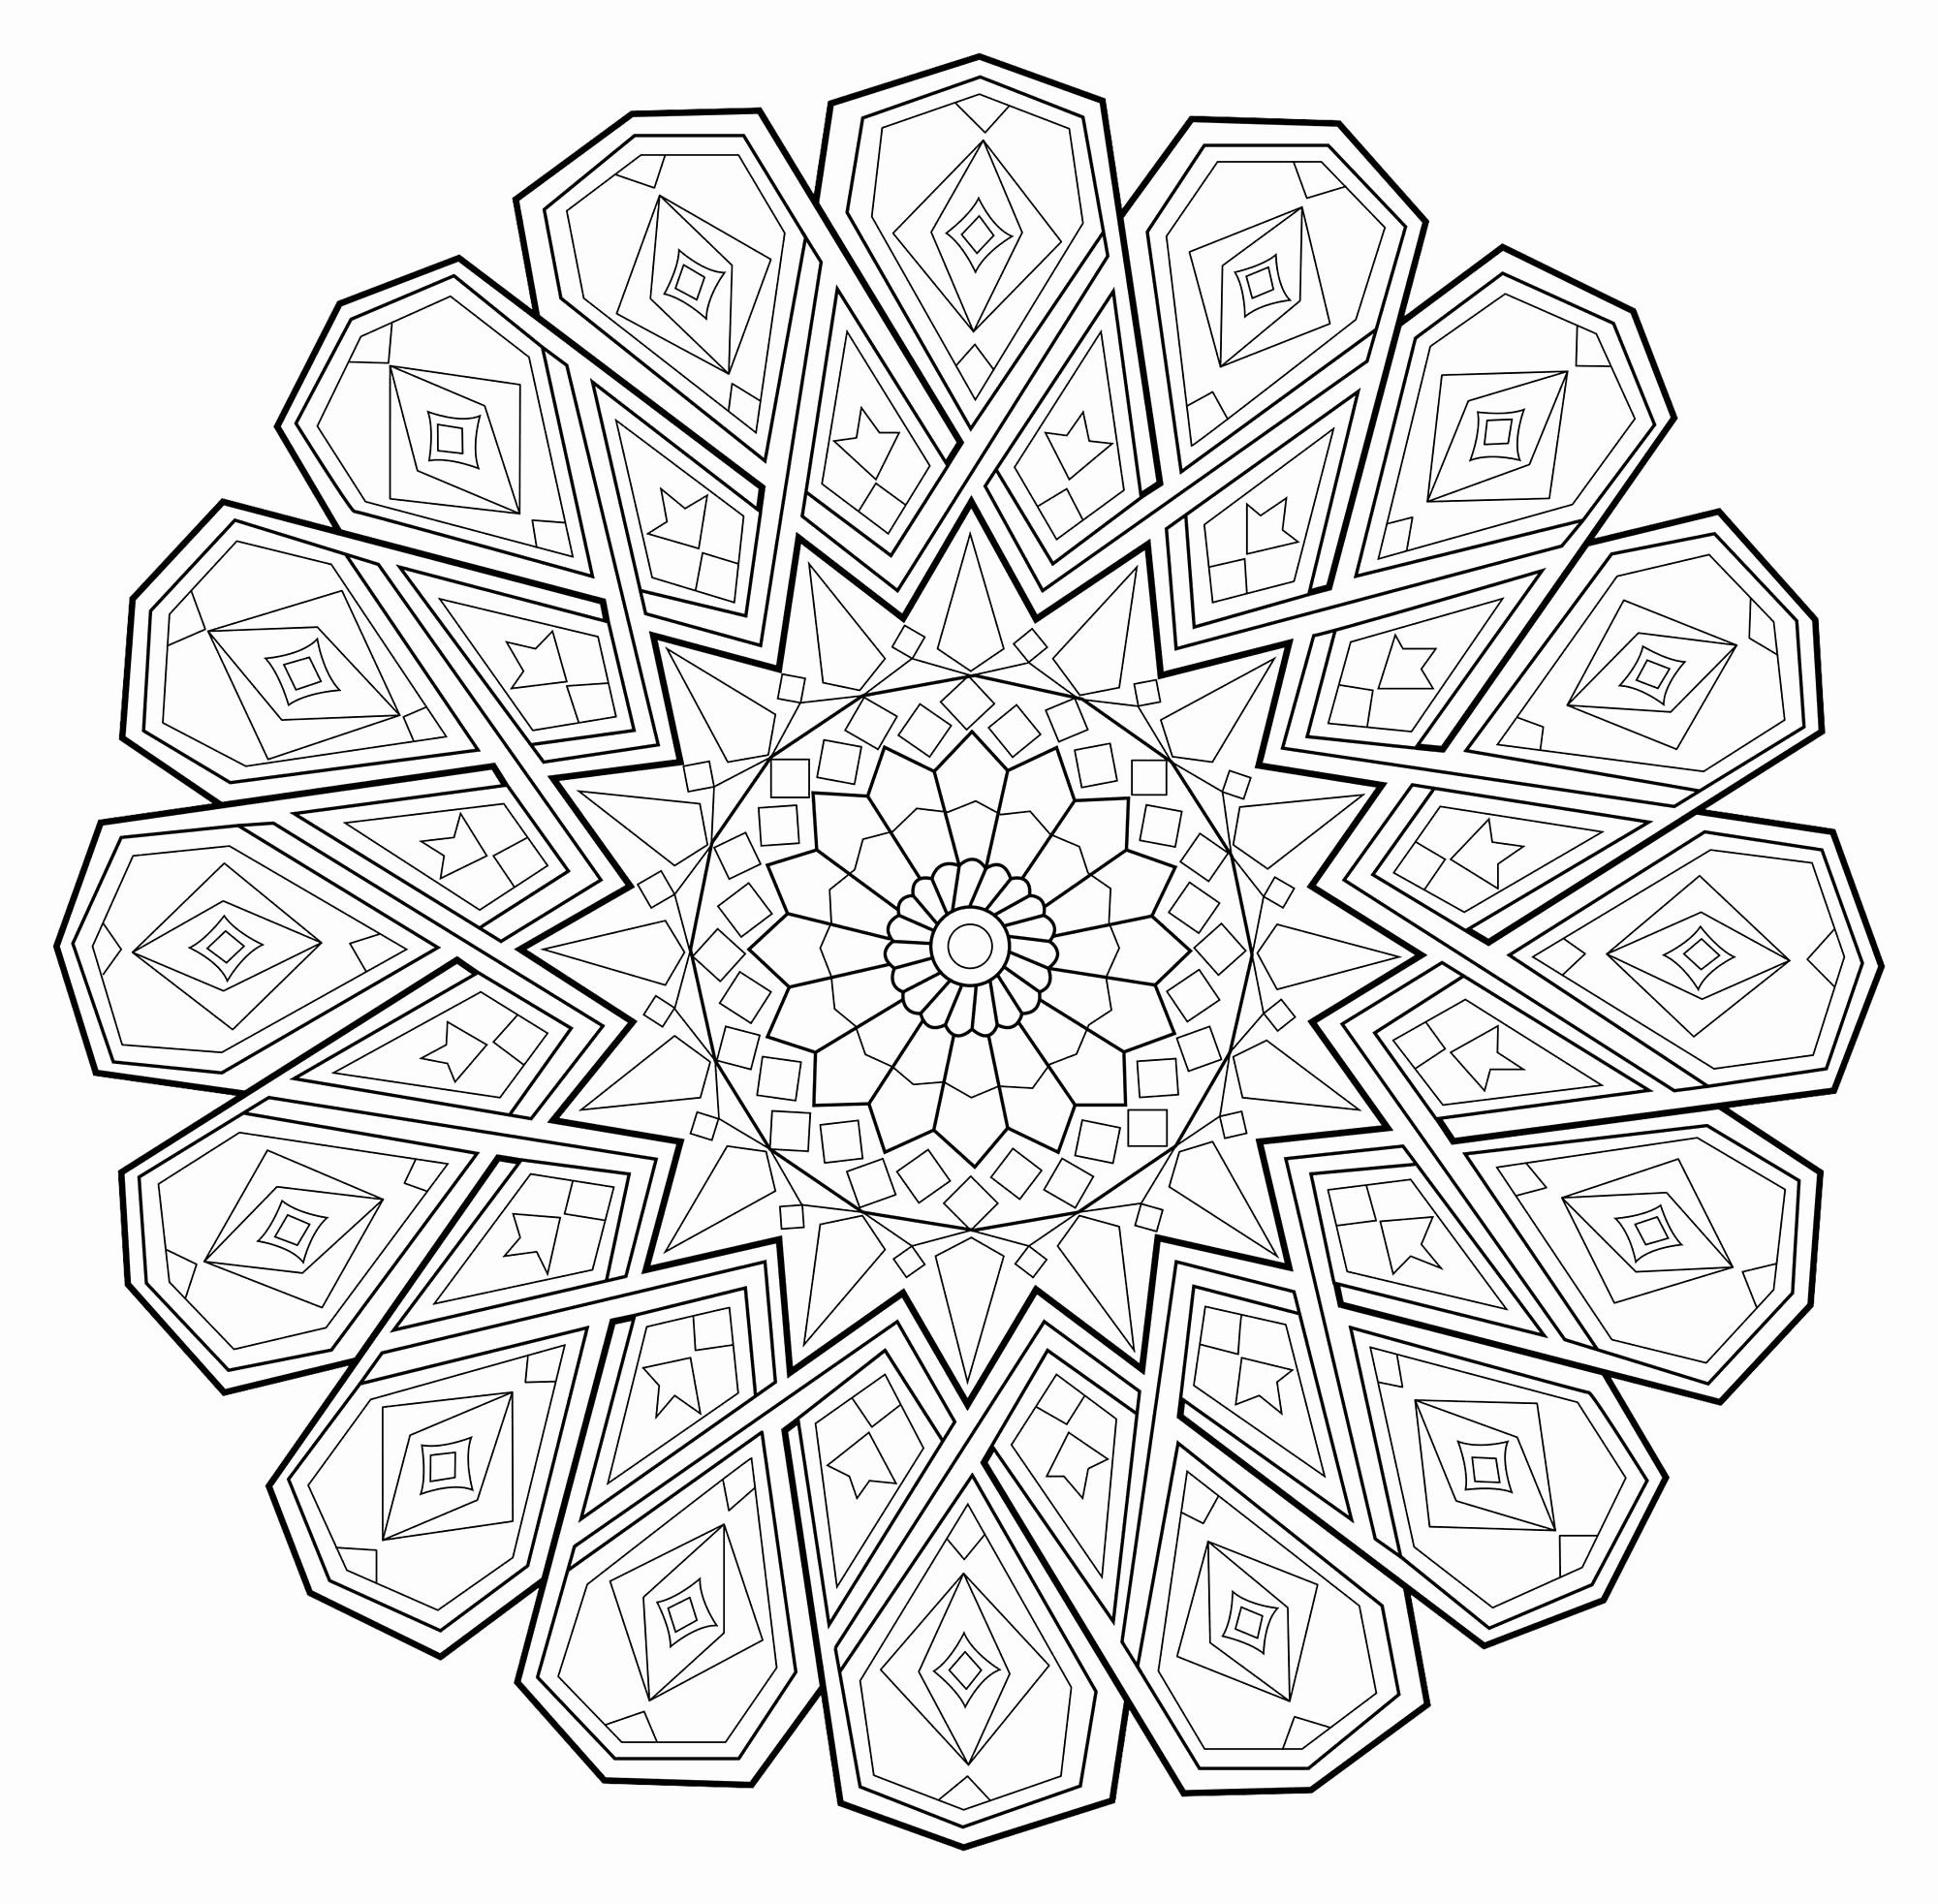 Optical Illusion Coloring Sheets Lovely Coloring Design Pages Vapha Kaptanband Meetopia Coloring Pages Mandala Coloring Pages Mandala Coloring Coloring Pages